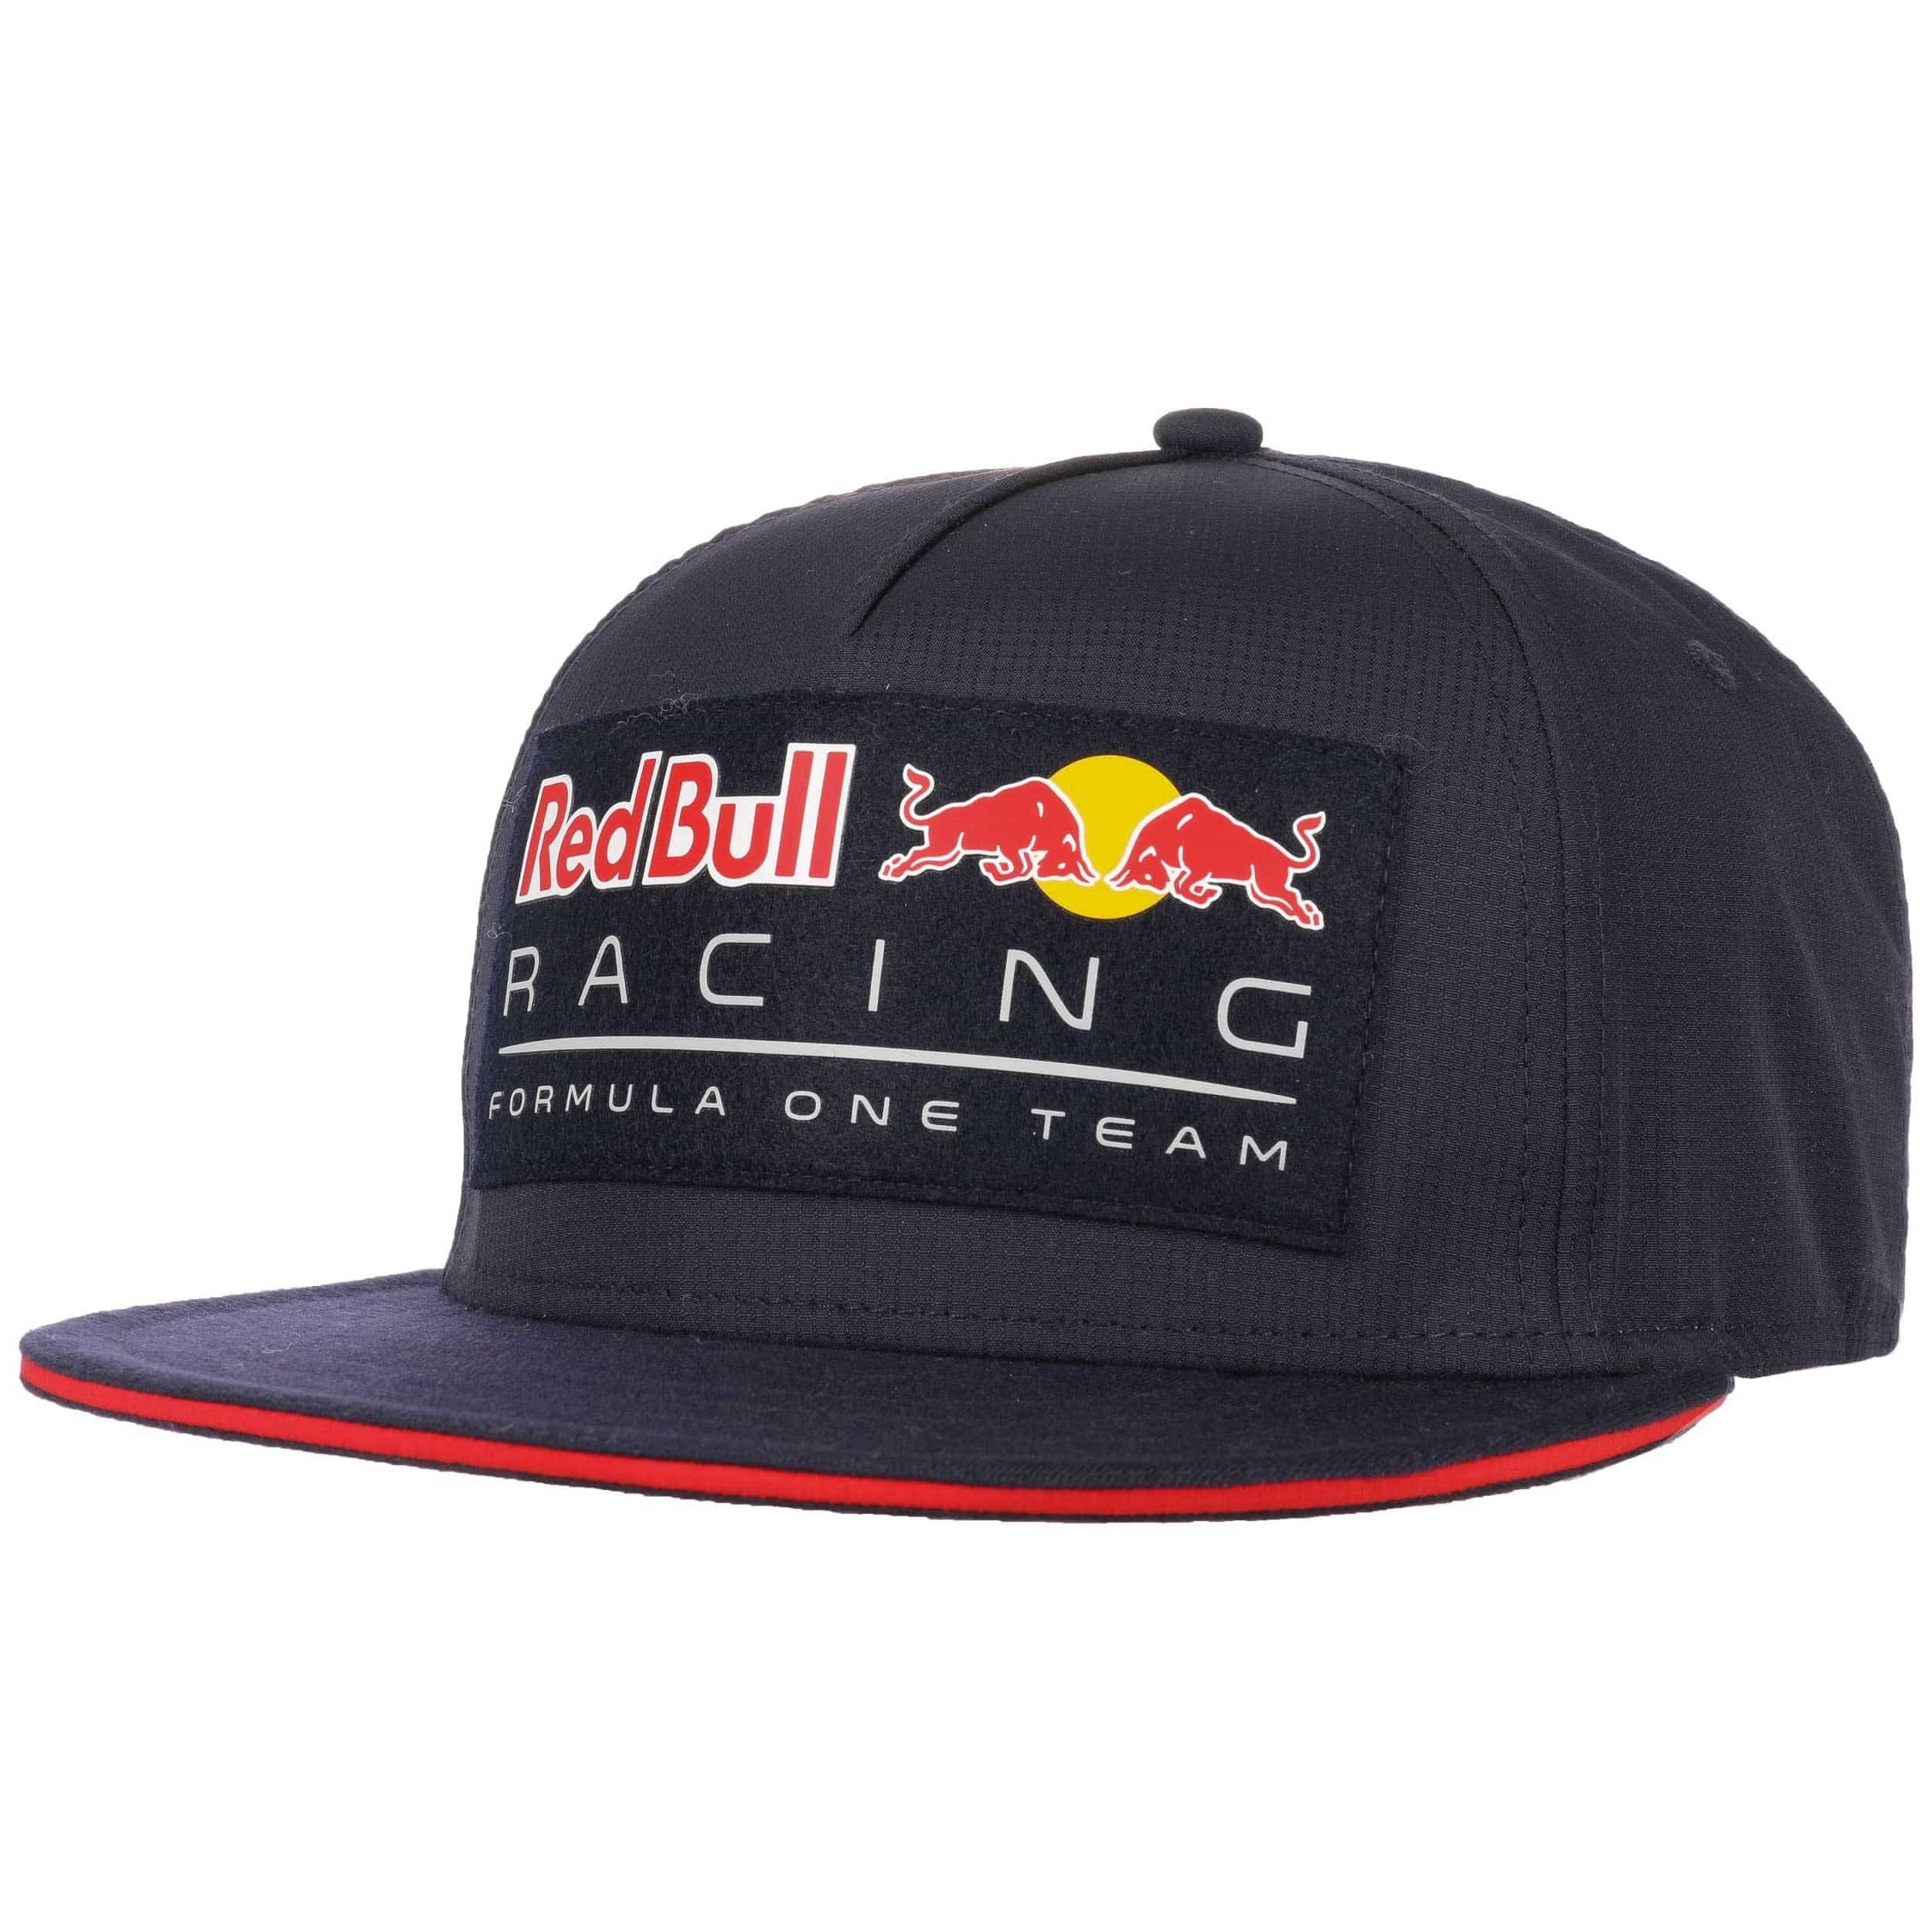 red bull racing cap by puma 29 95. Black Bedroom Furniture Sets. Home Design Ideas